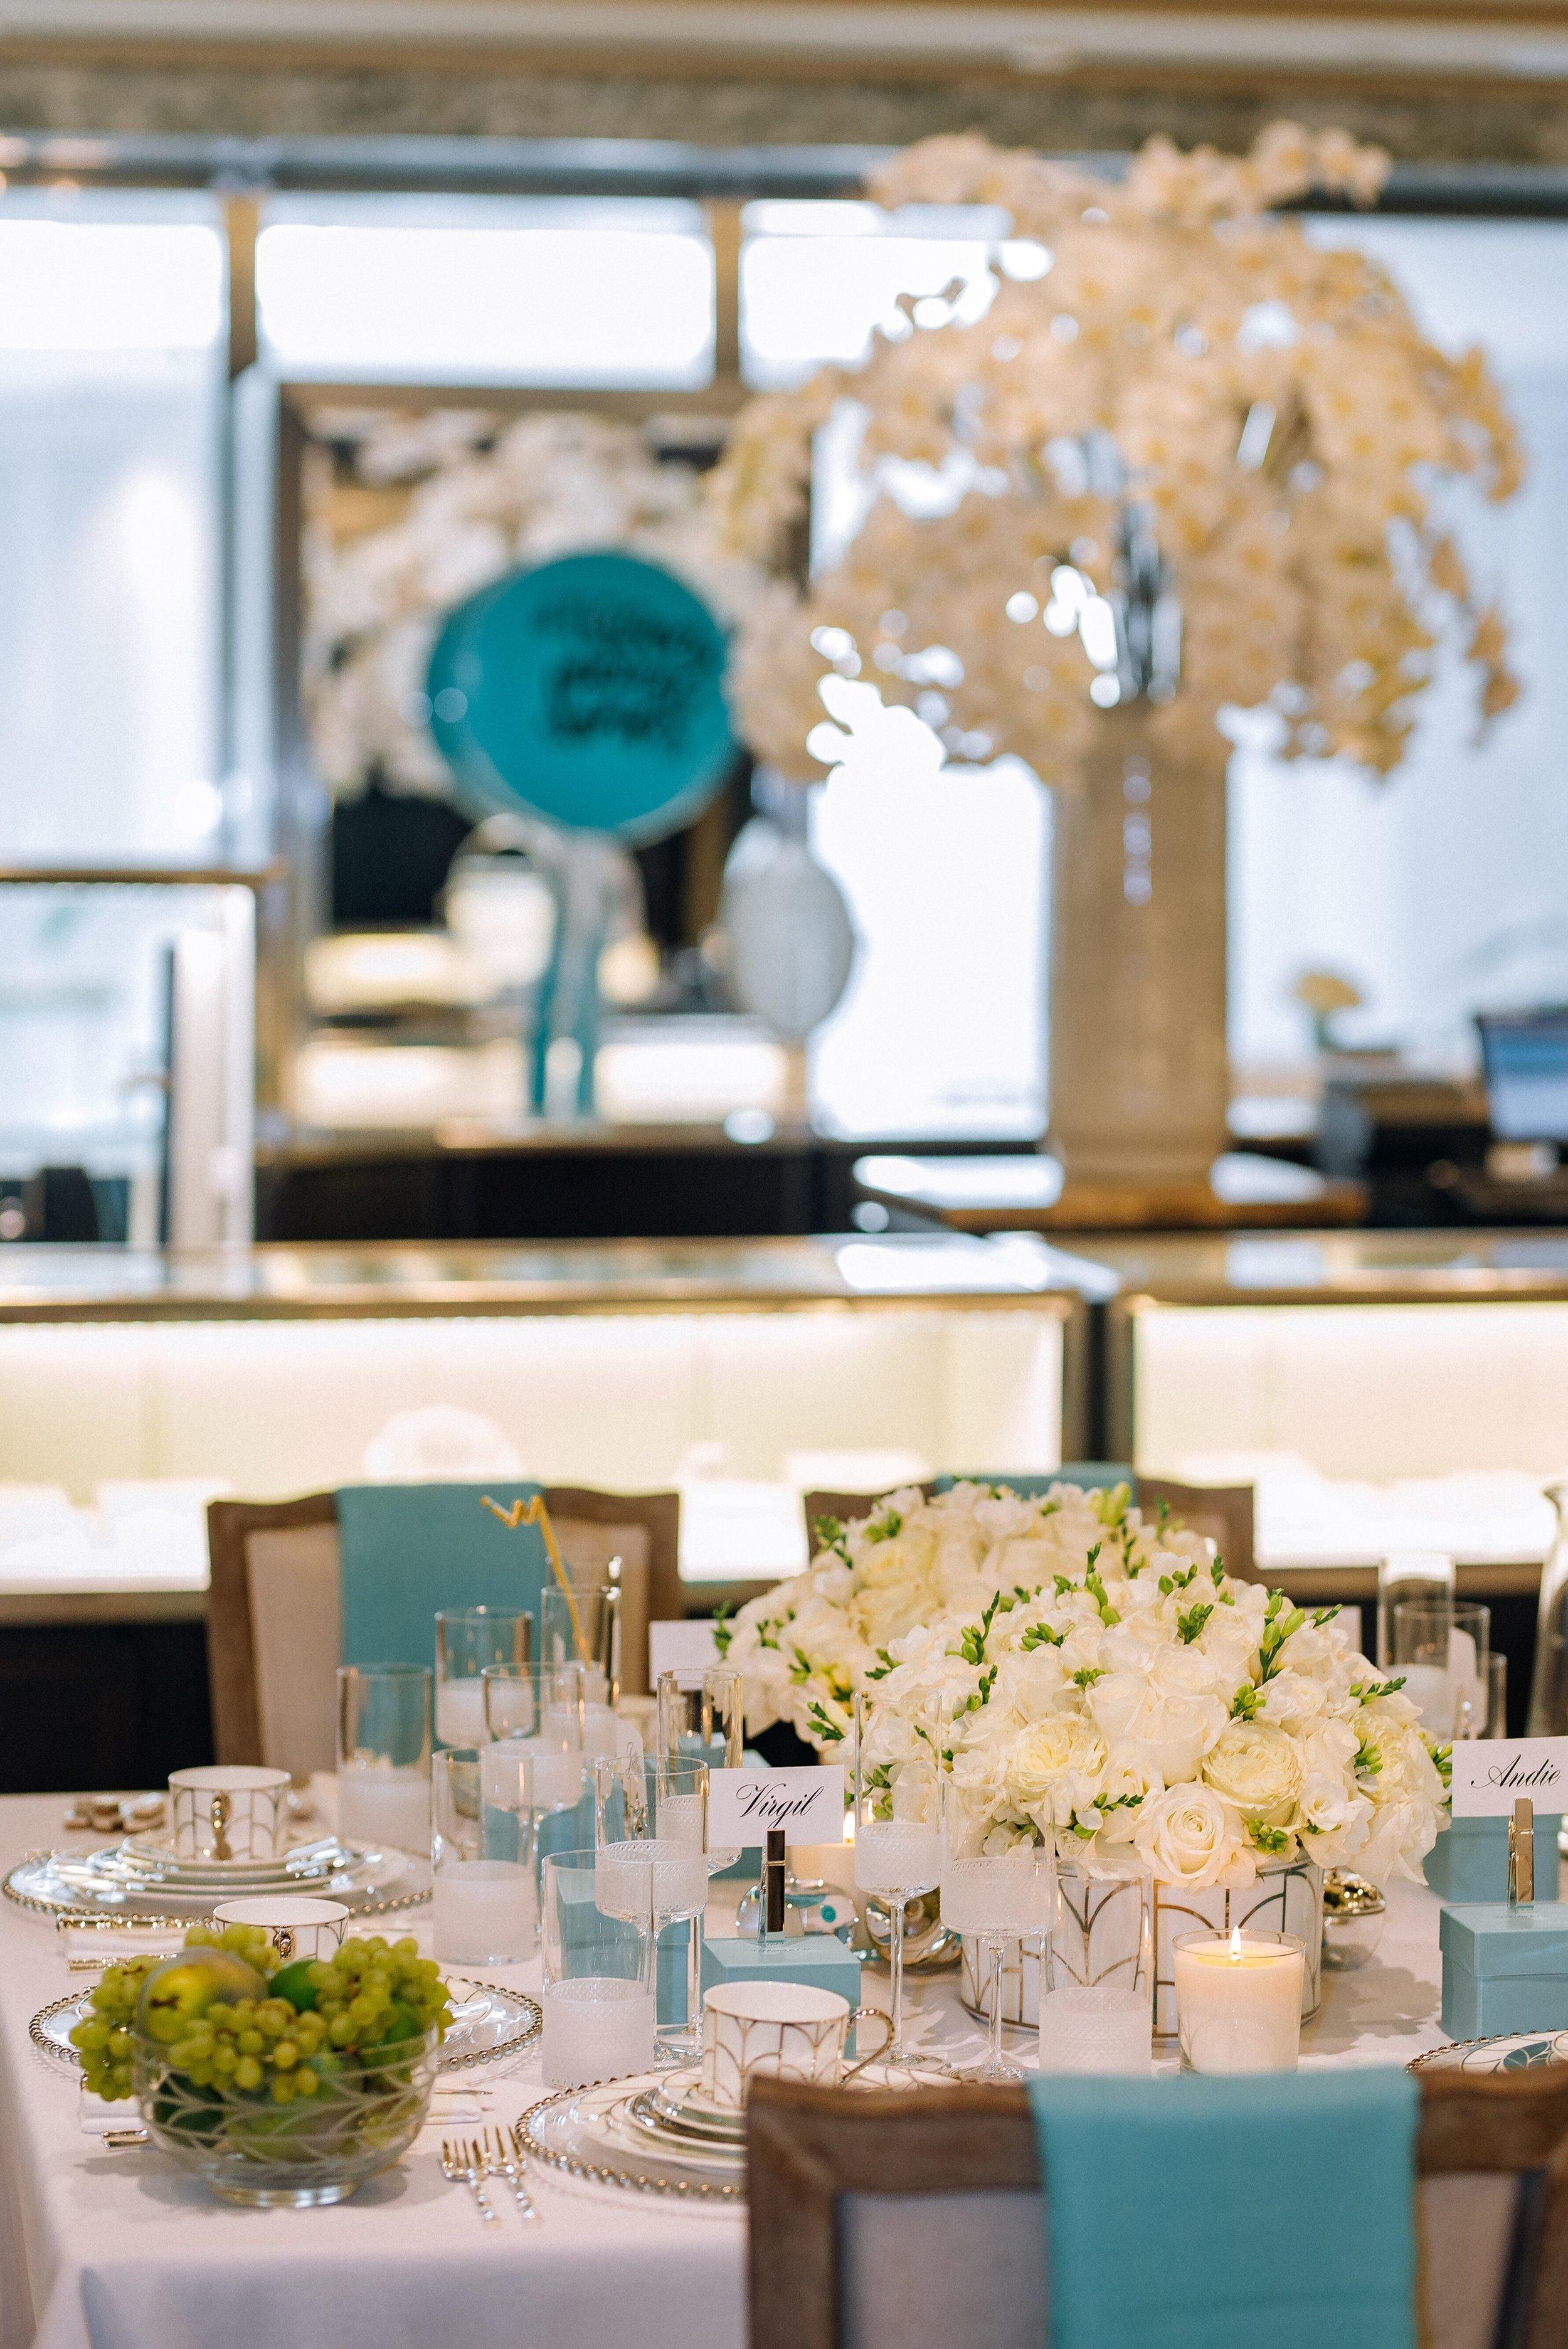 Tiffany & Co engagement ring fete nashville wedding3.jpeg